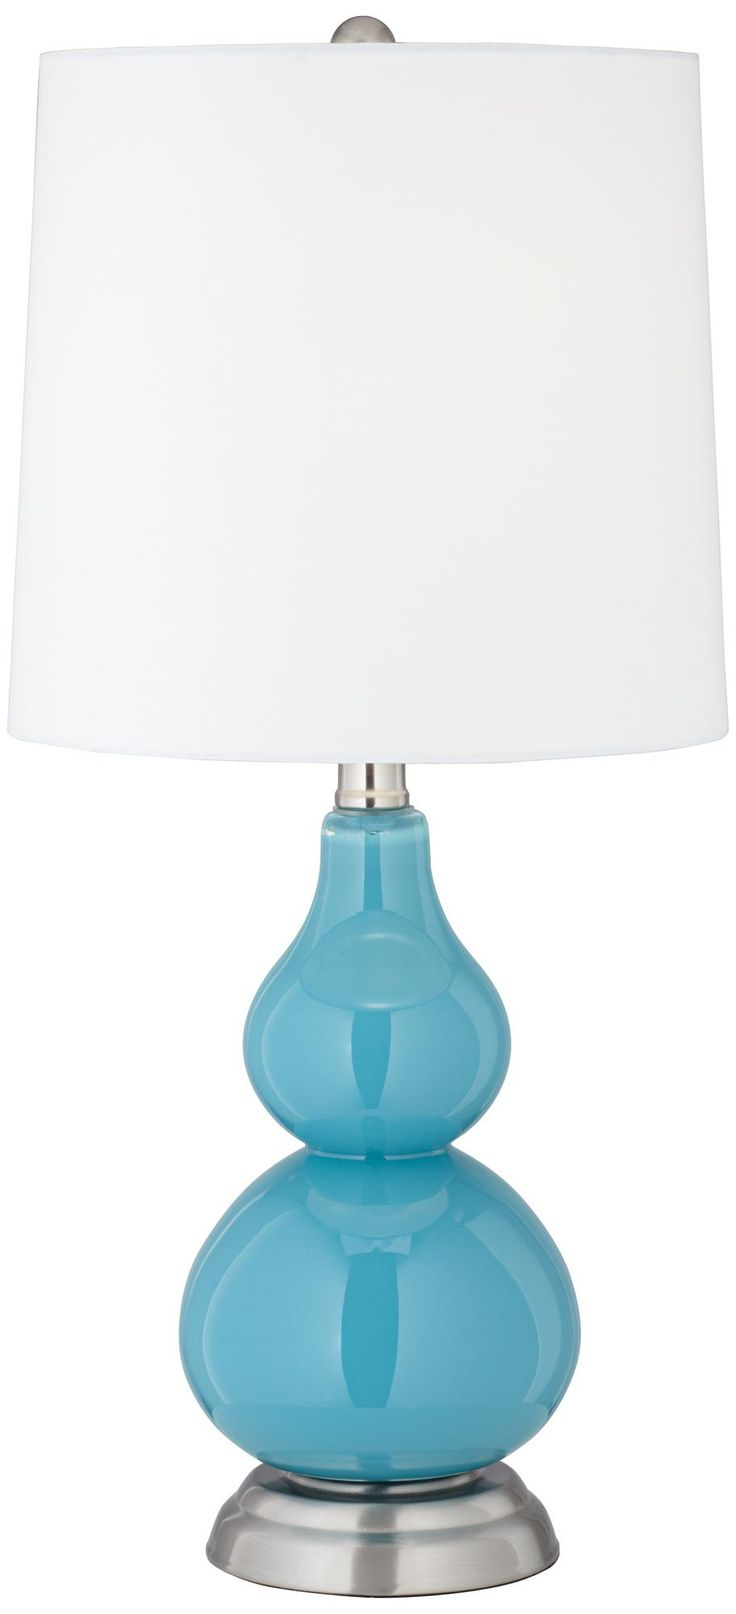 small accent table lamps lighting and ceiling fans tiny shelving quilted runner patterns free easy blue lamp shade legs danish furniture solid oak sofa black pier imports dining